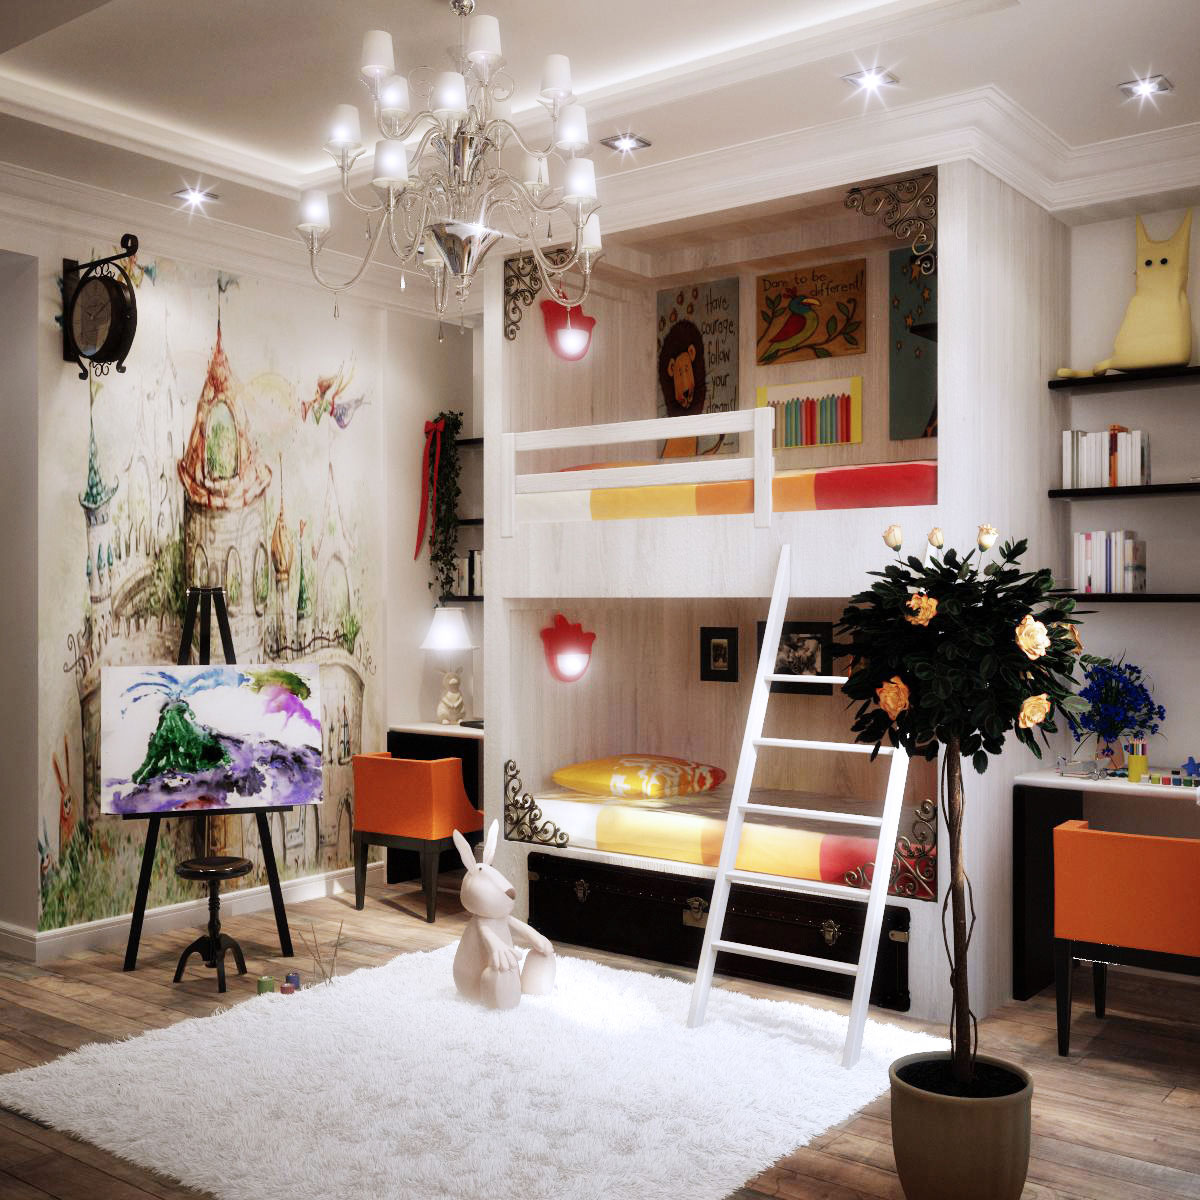 Kids Room Decorating Ideas With Colorful Theme Looks